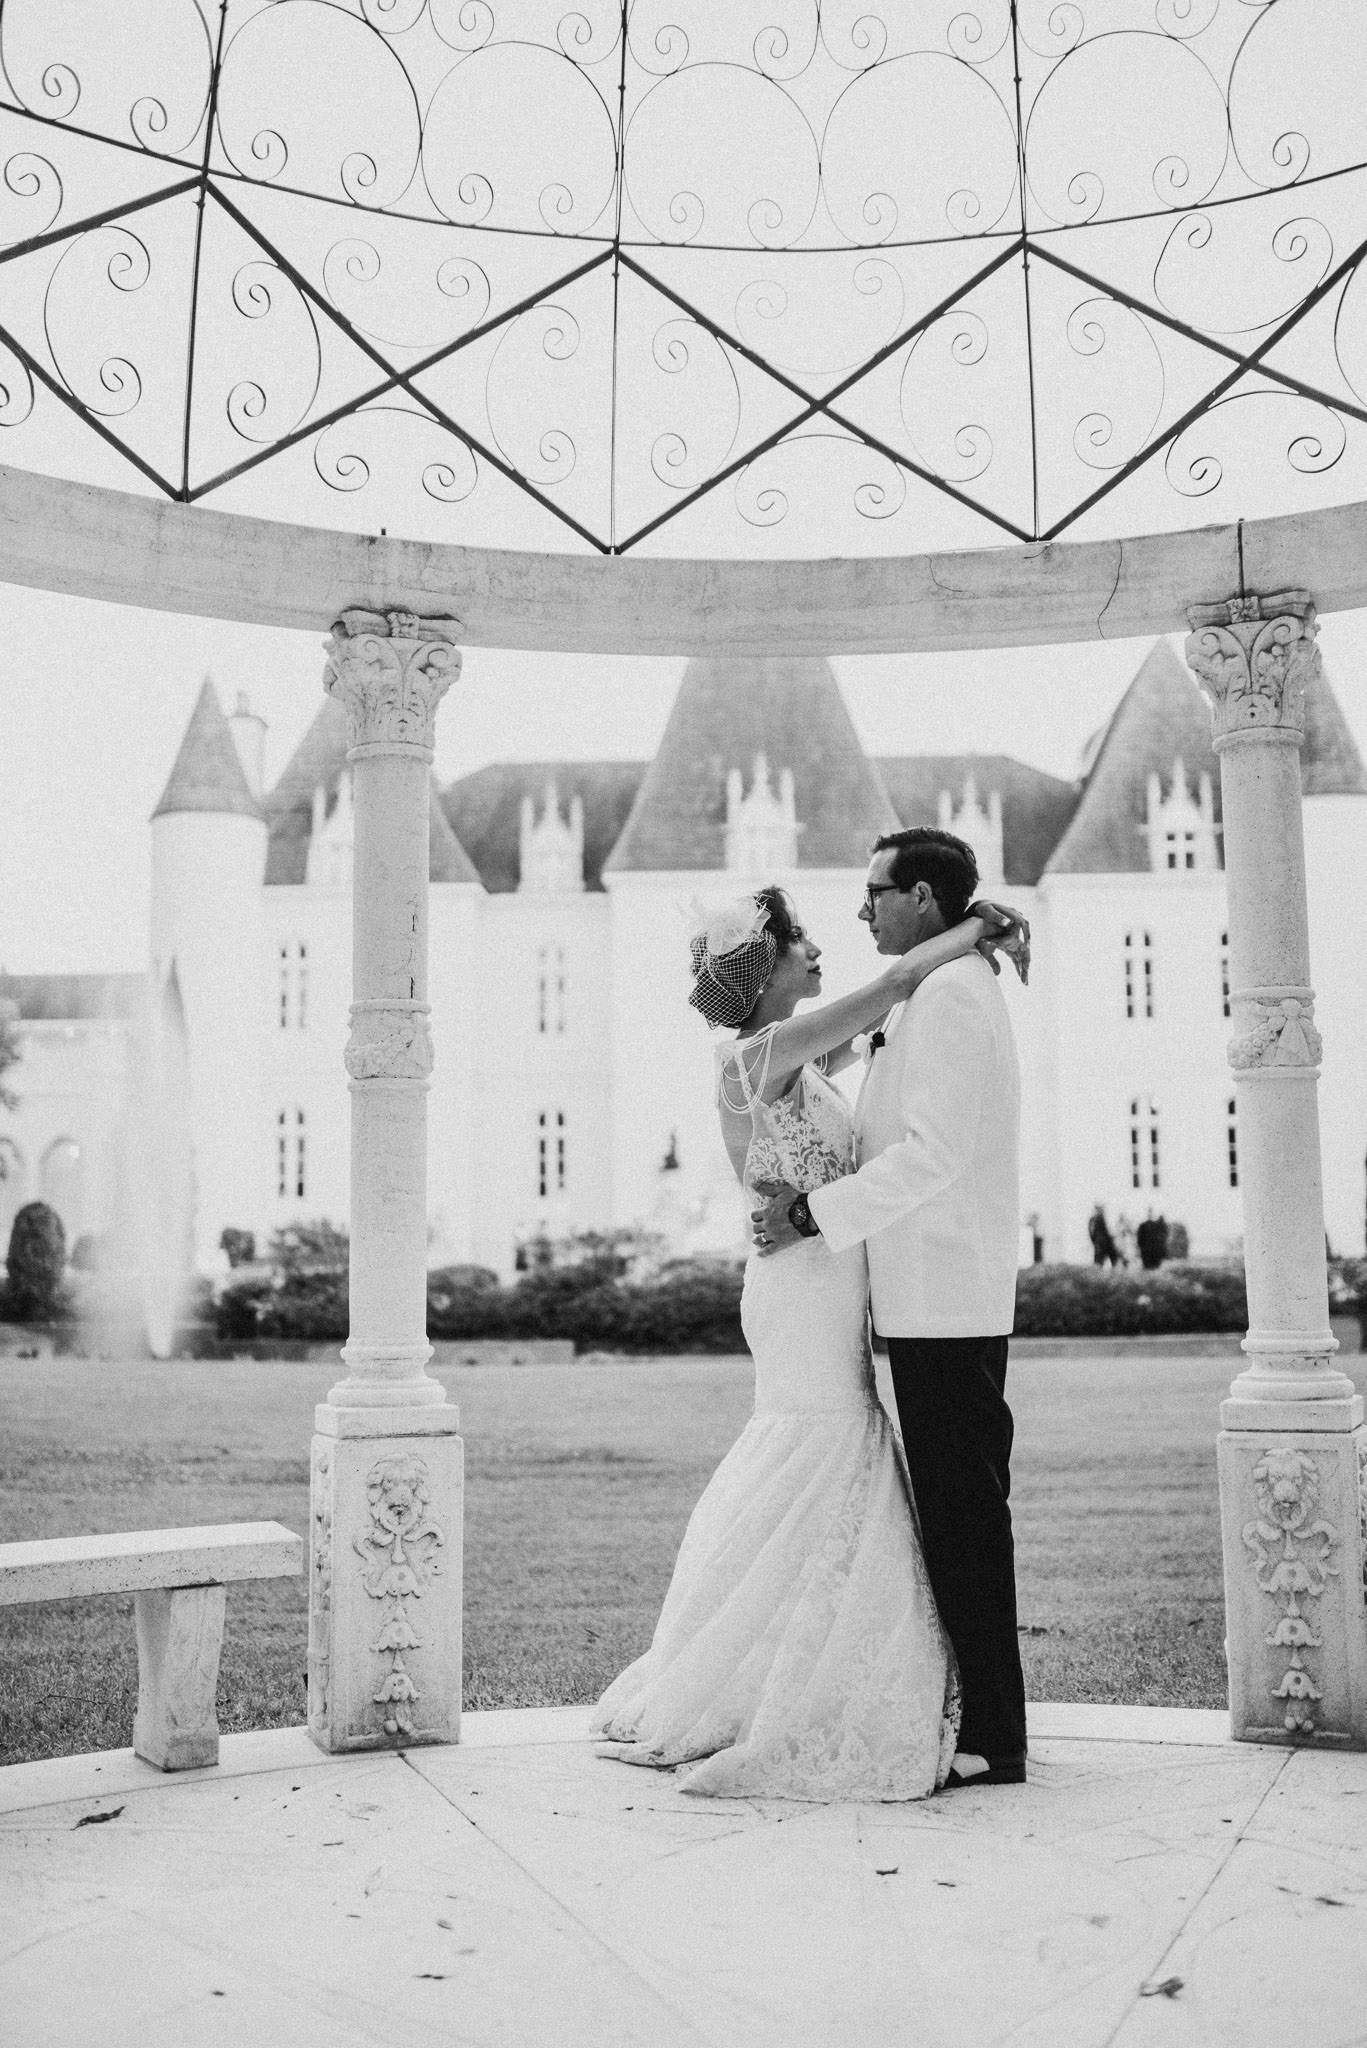 houston-vintage-black-white-1920s-chateau-cocomar-wedding-venue-photographer-fine-art-luxury